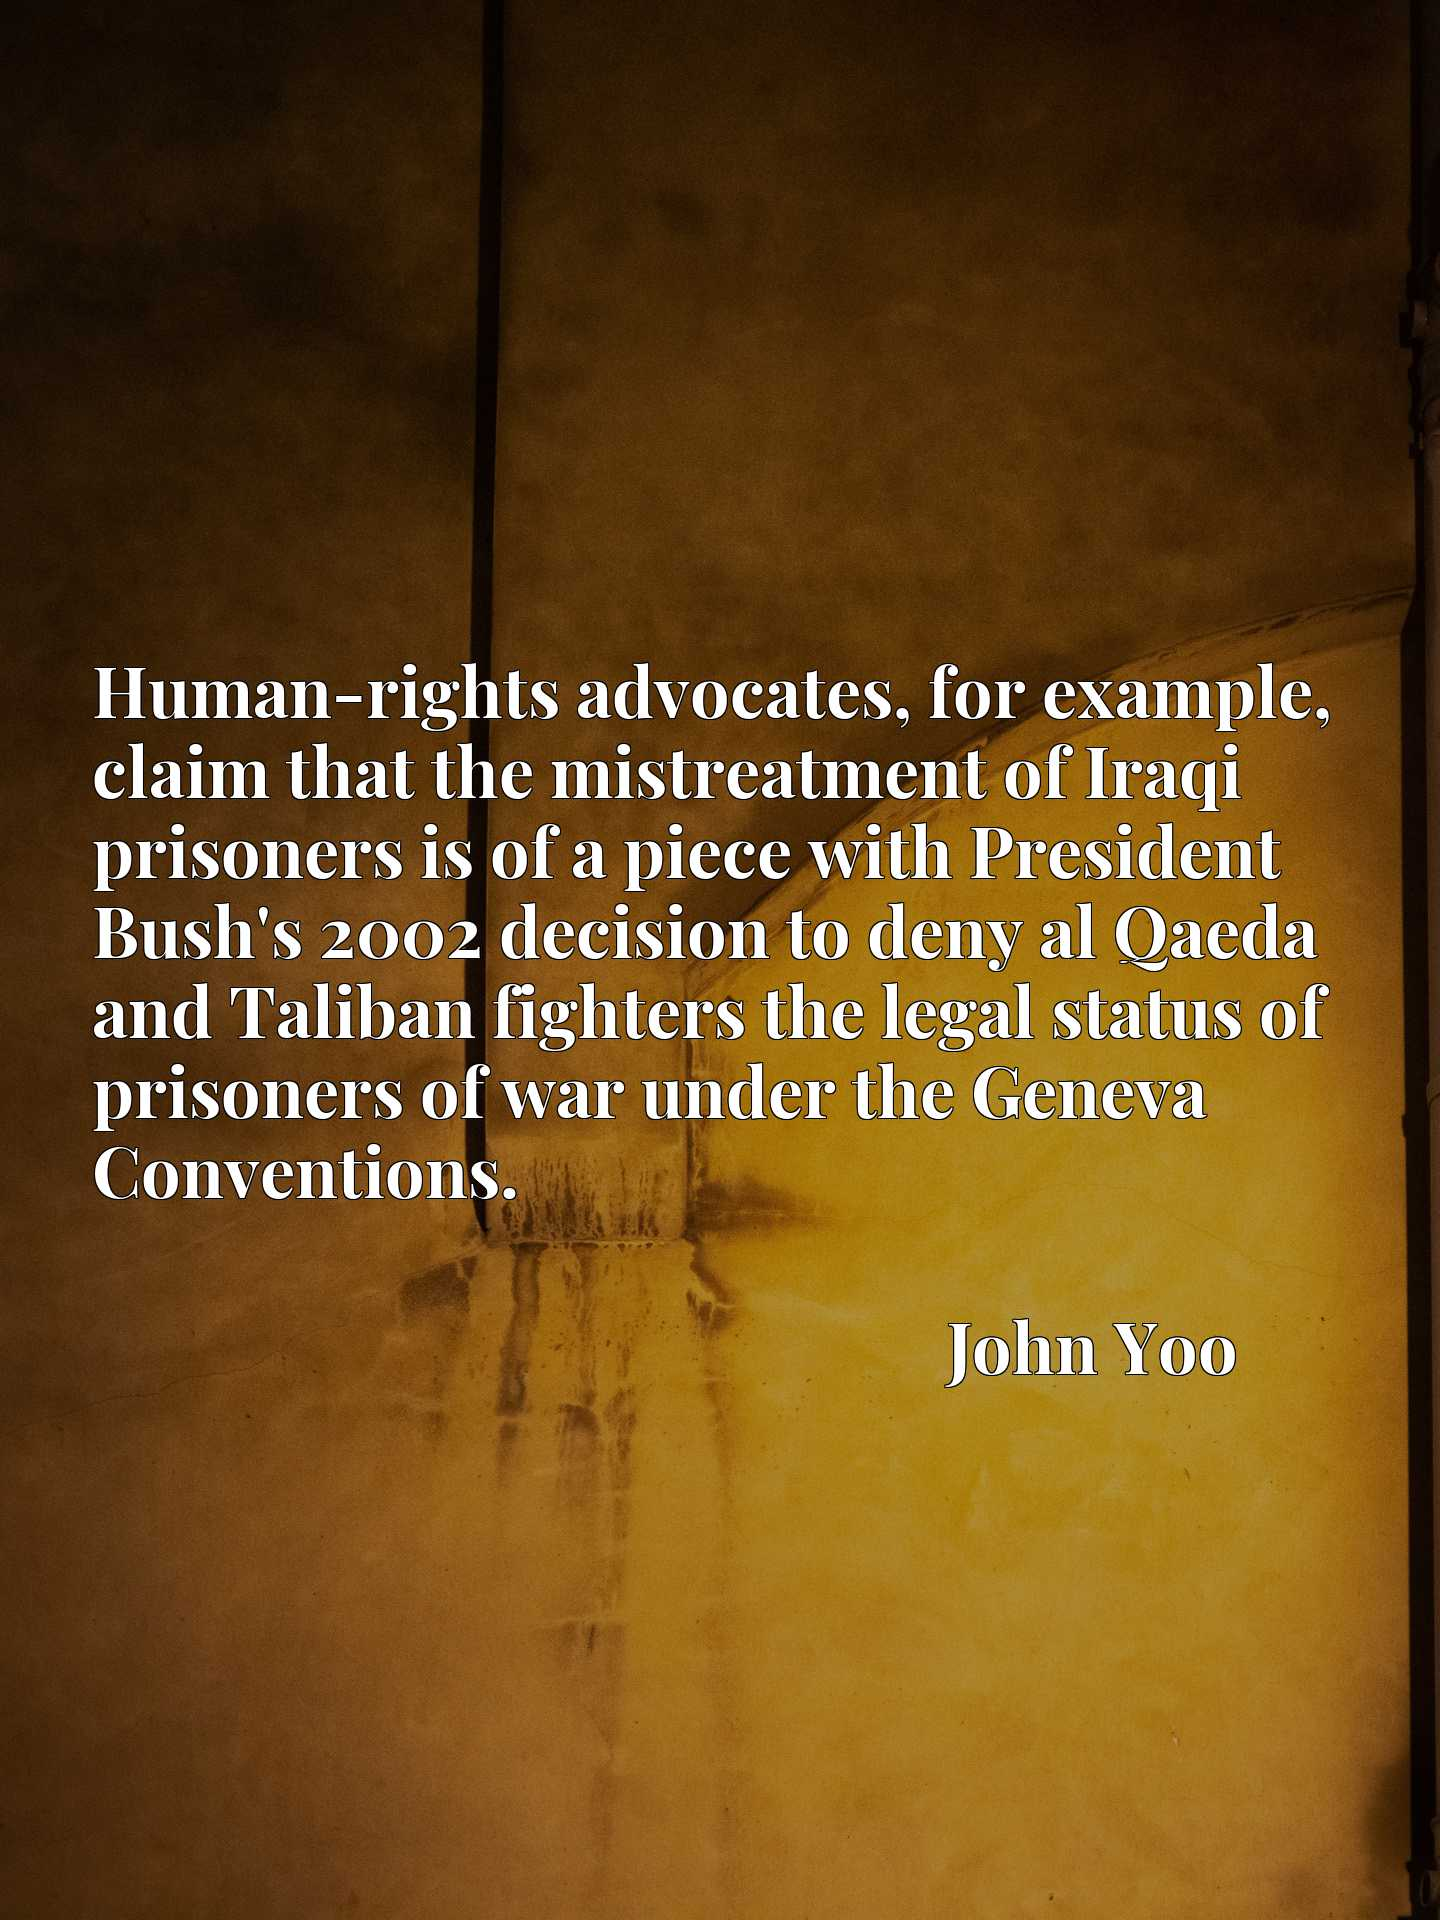 Quote Picture :Human-rights advocates, for example, claim that the mistreatment of Iraqi prisoners is of a piece with President Bush's 2002 decision to deny al Qaeda and Taliban fighters the legal status of prisoners of war under the Geneva Conventions.